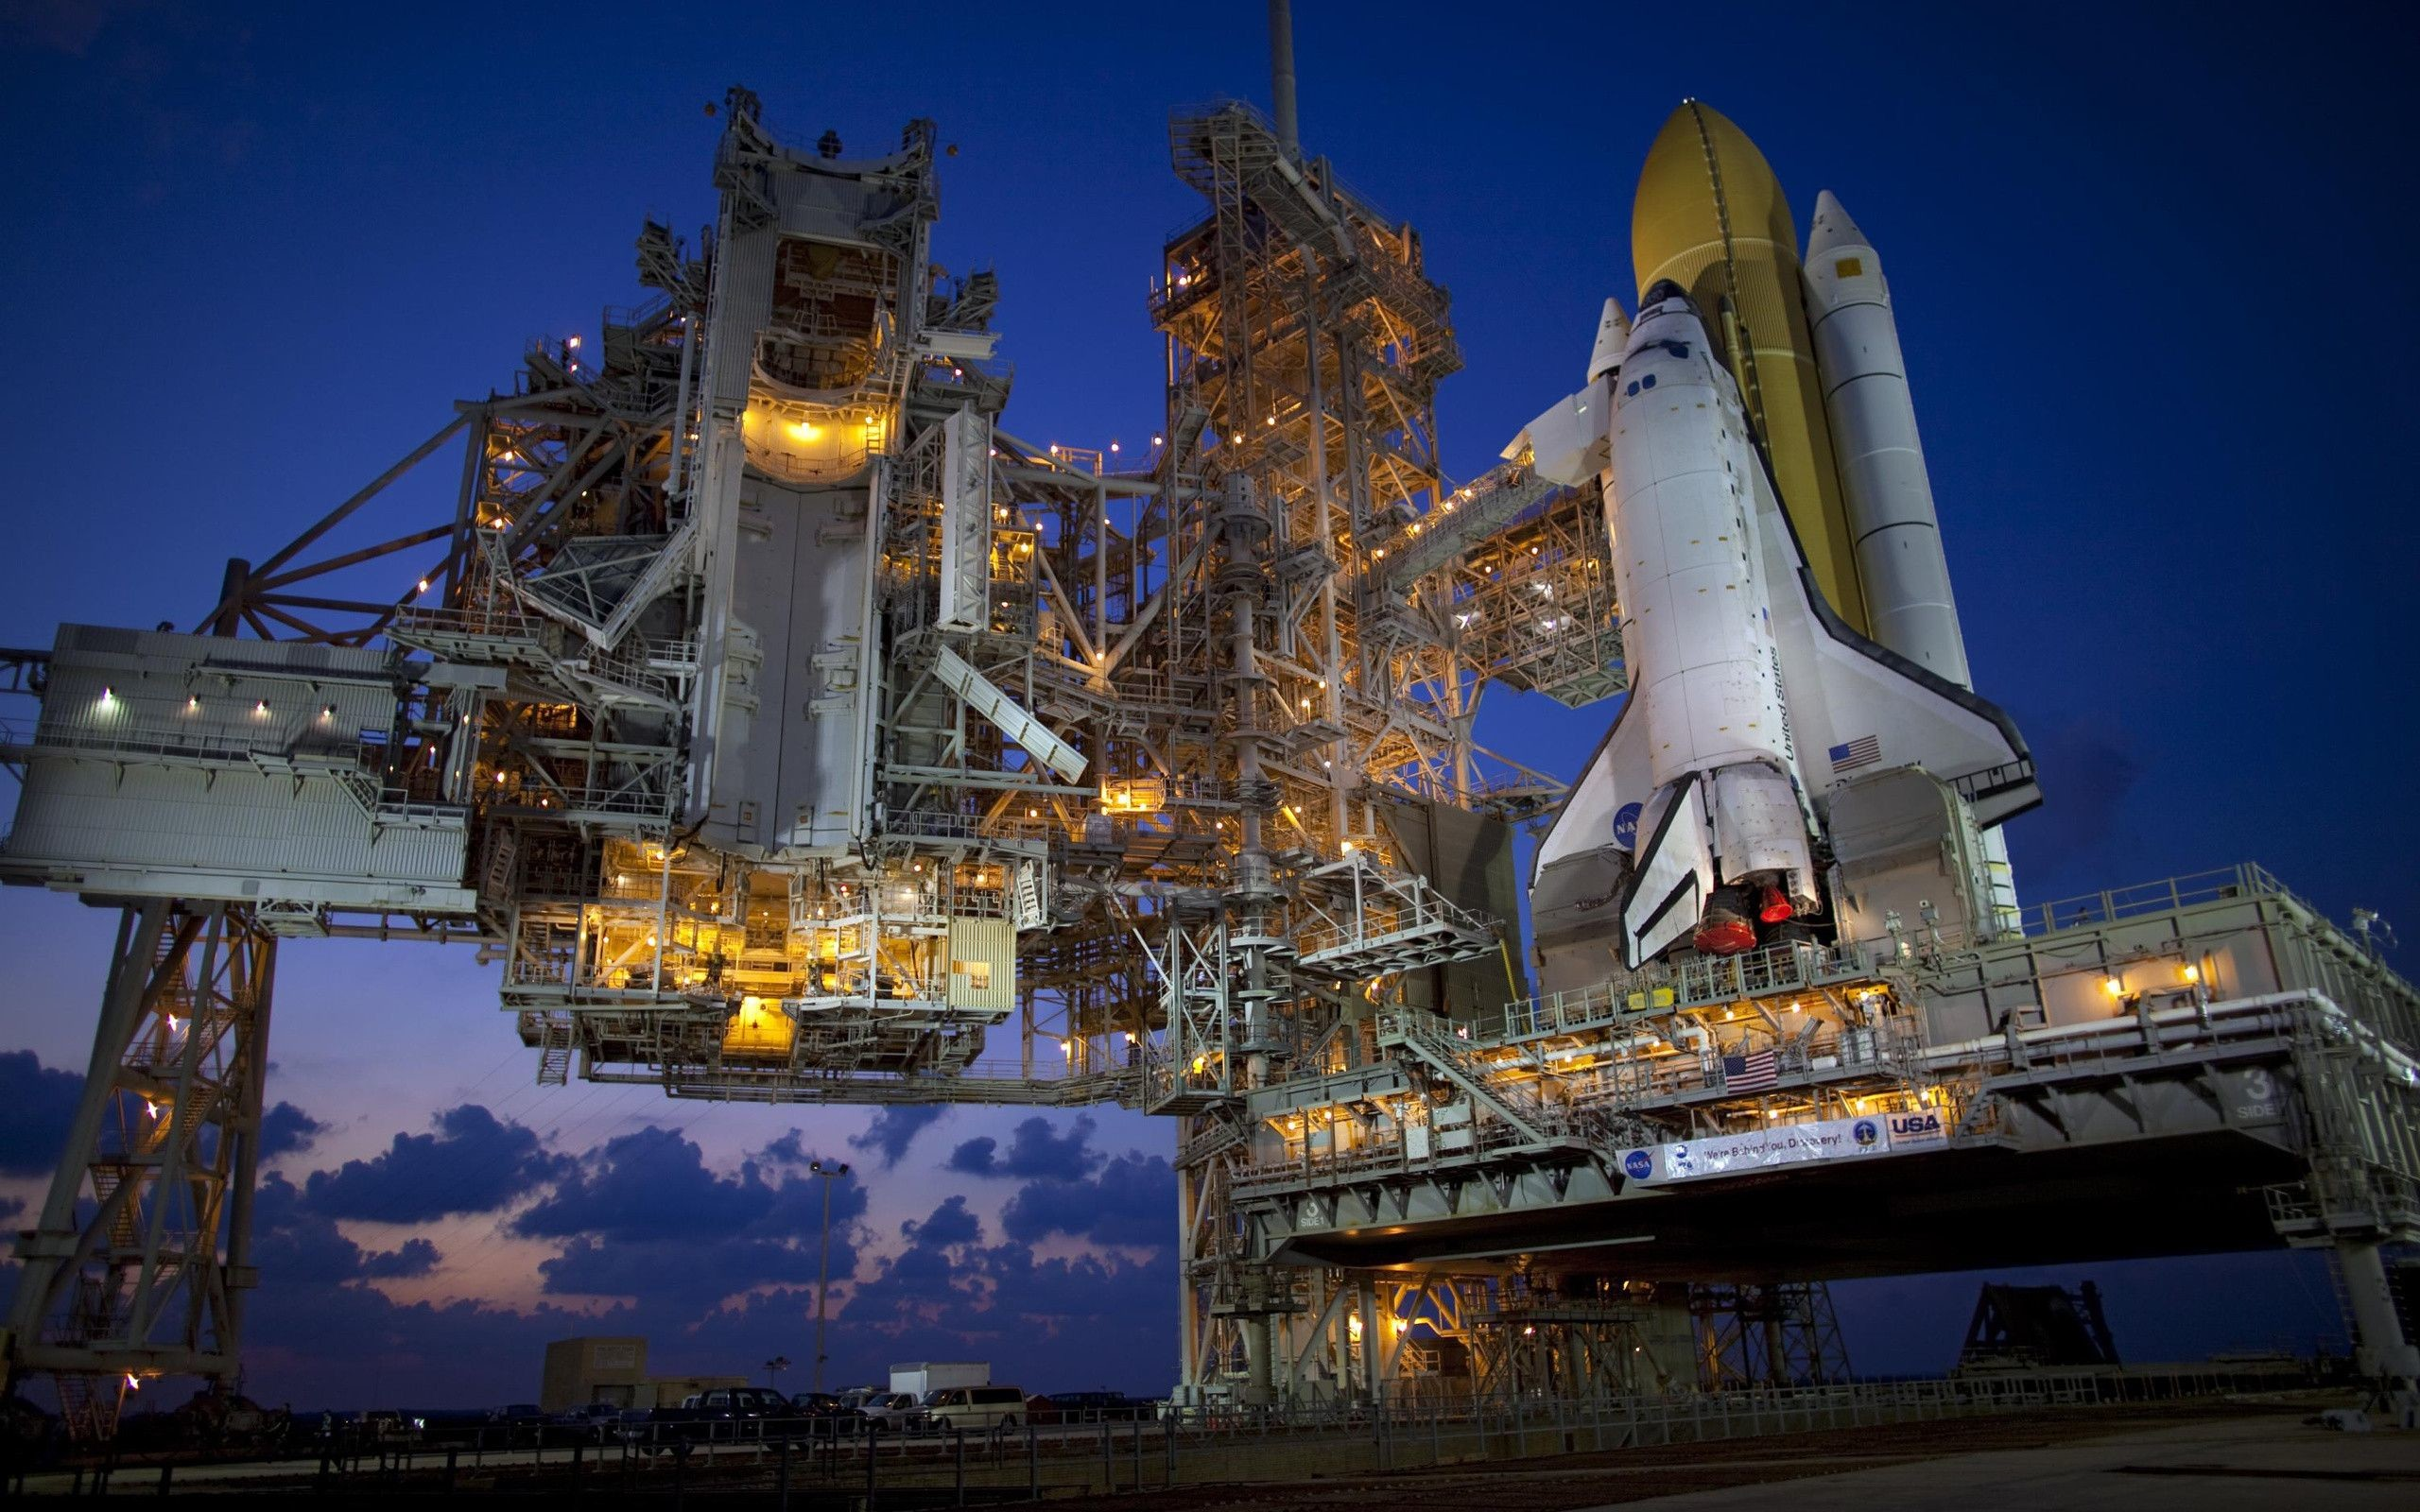 2560x1600 Space Shuttle Wallpapers High Quality For Desktop Wallpaper 2560 x 1600 px  1.2 MB iphone hd